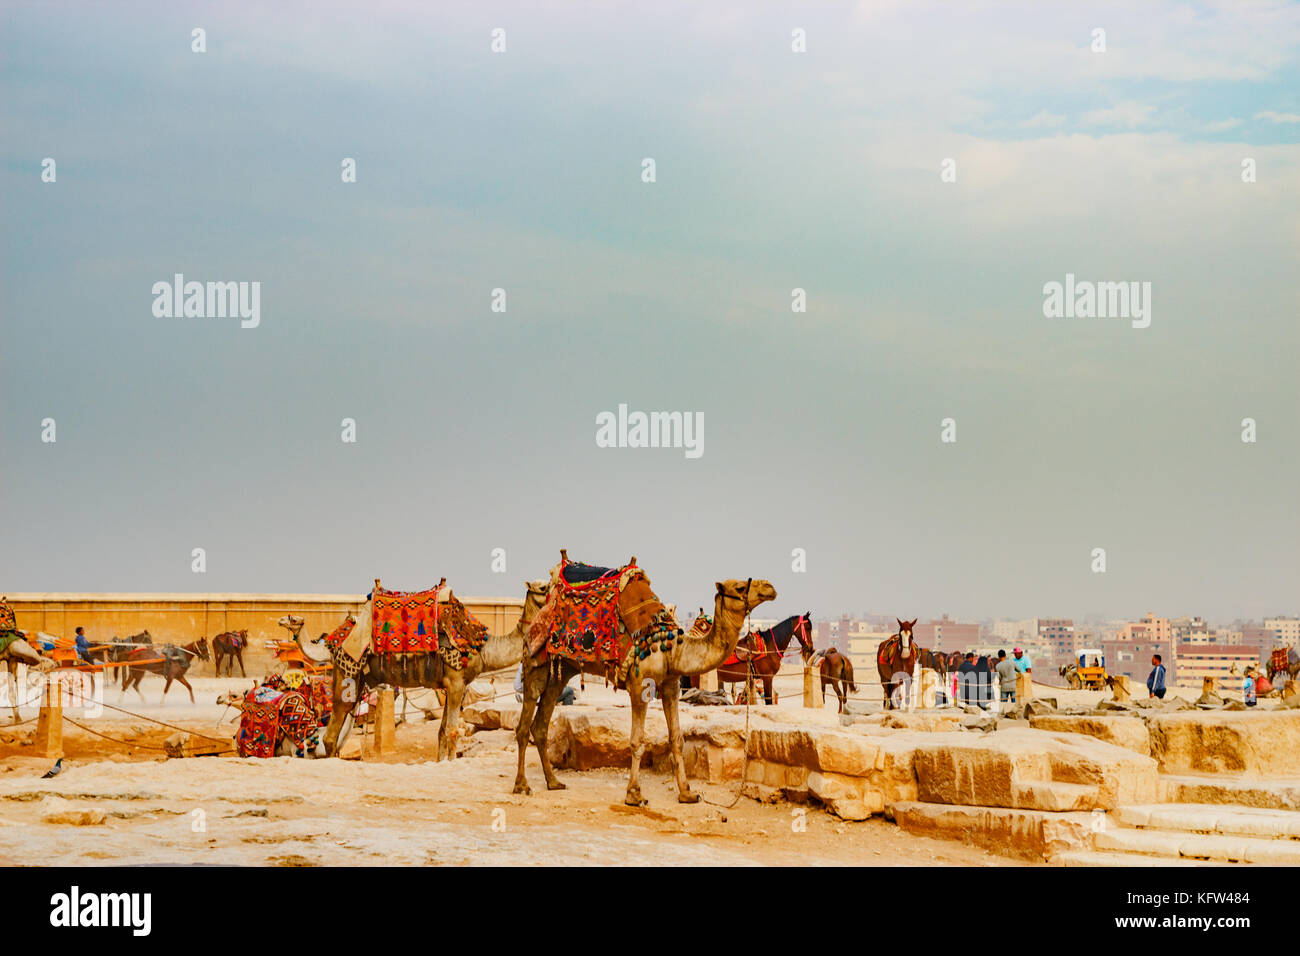 Camel near the ancient pyramid in Cairo, Egypt - Stock Image